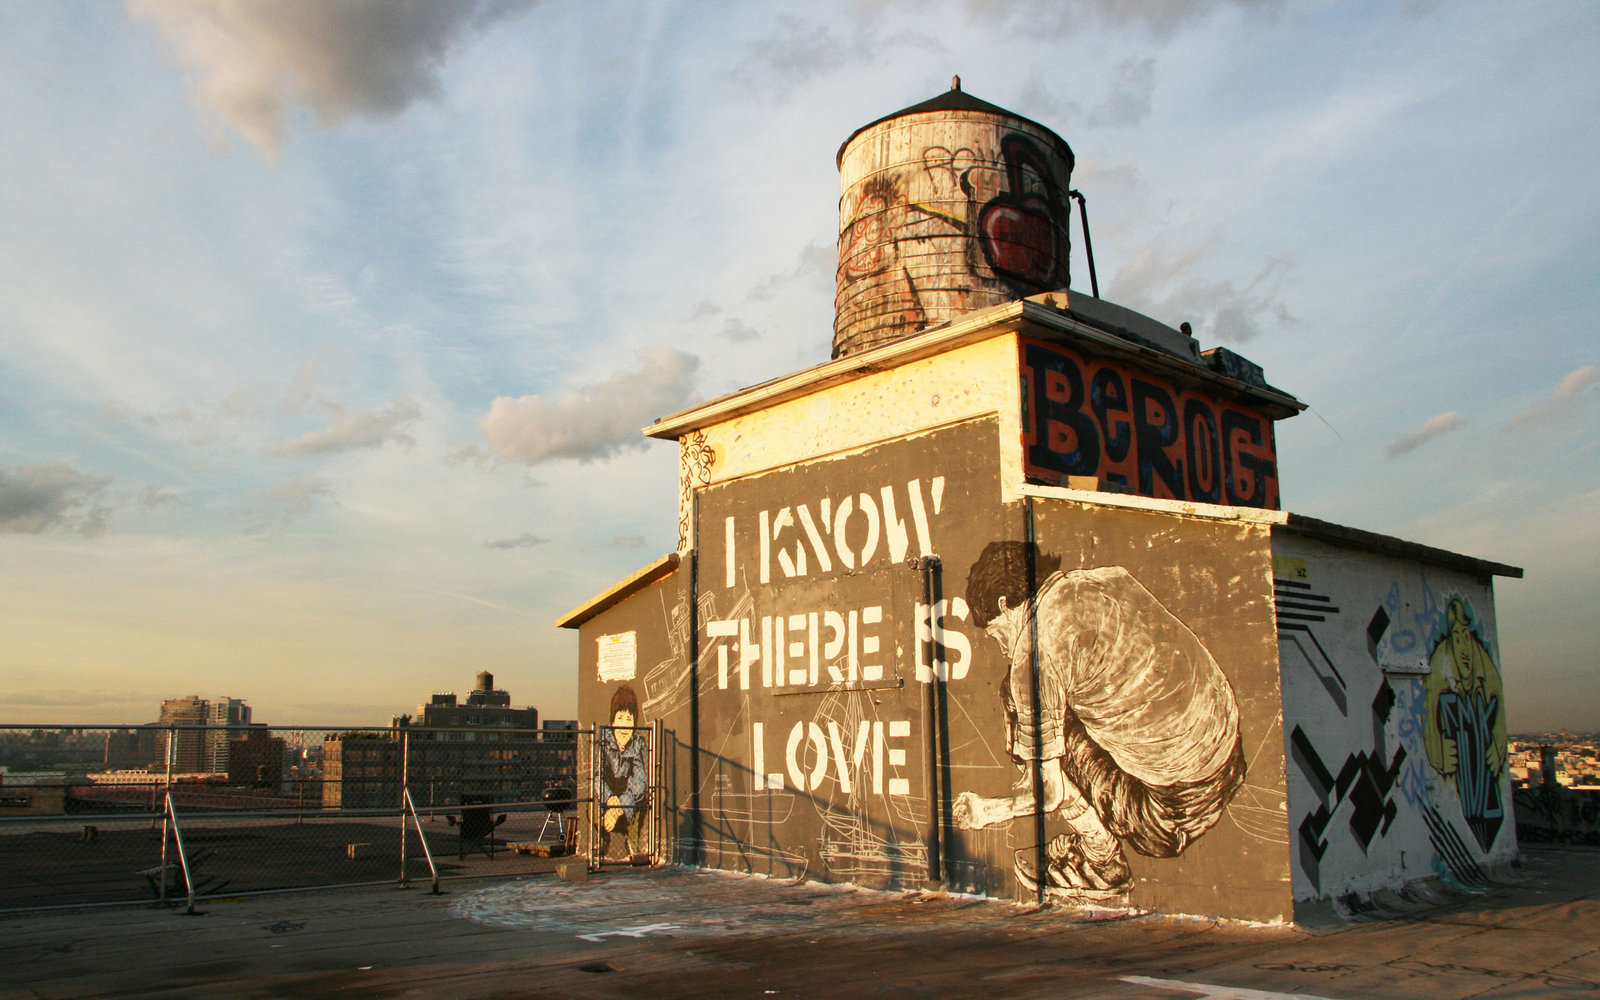 Best Places to See Public Art in NYC